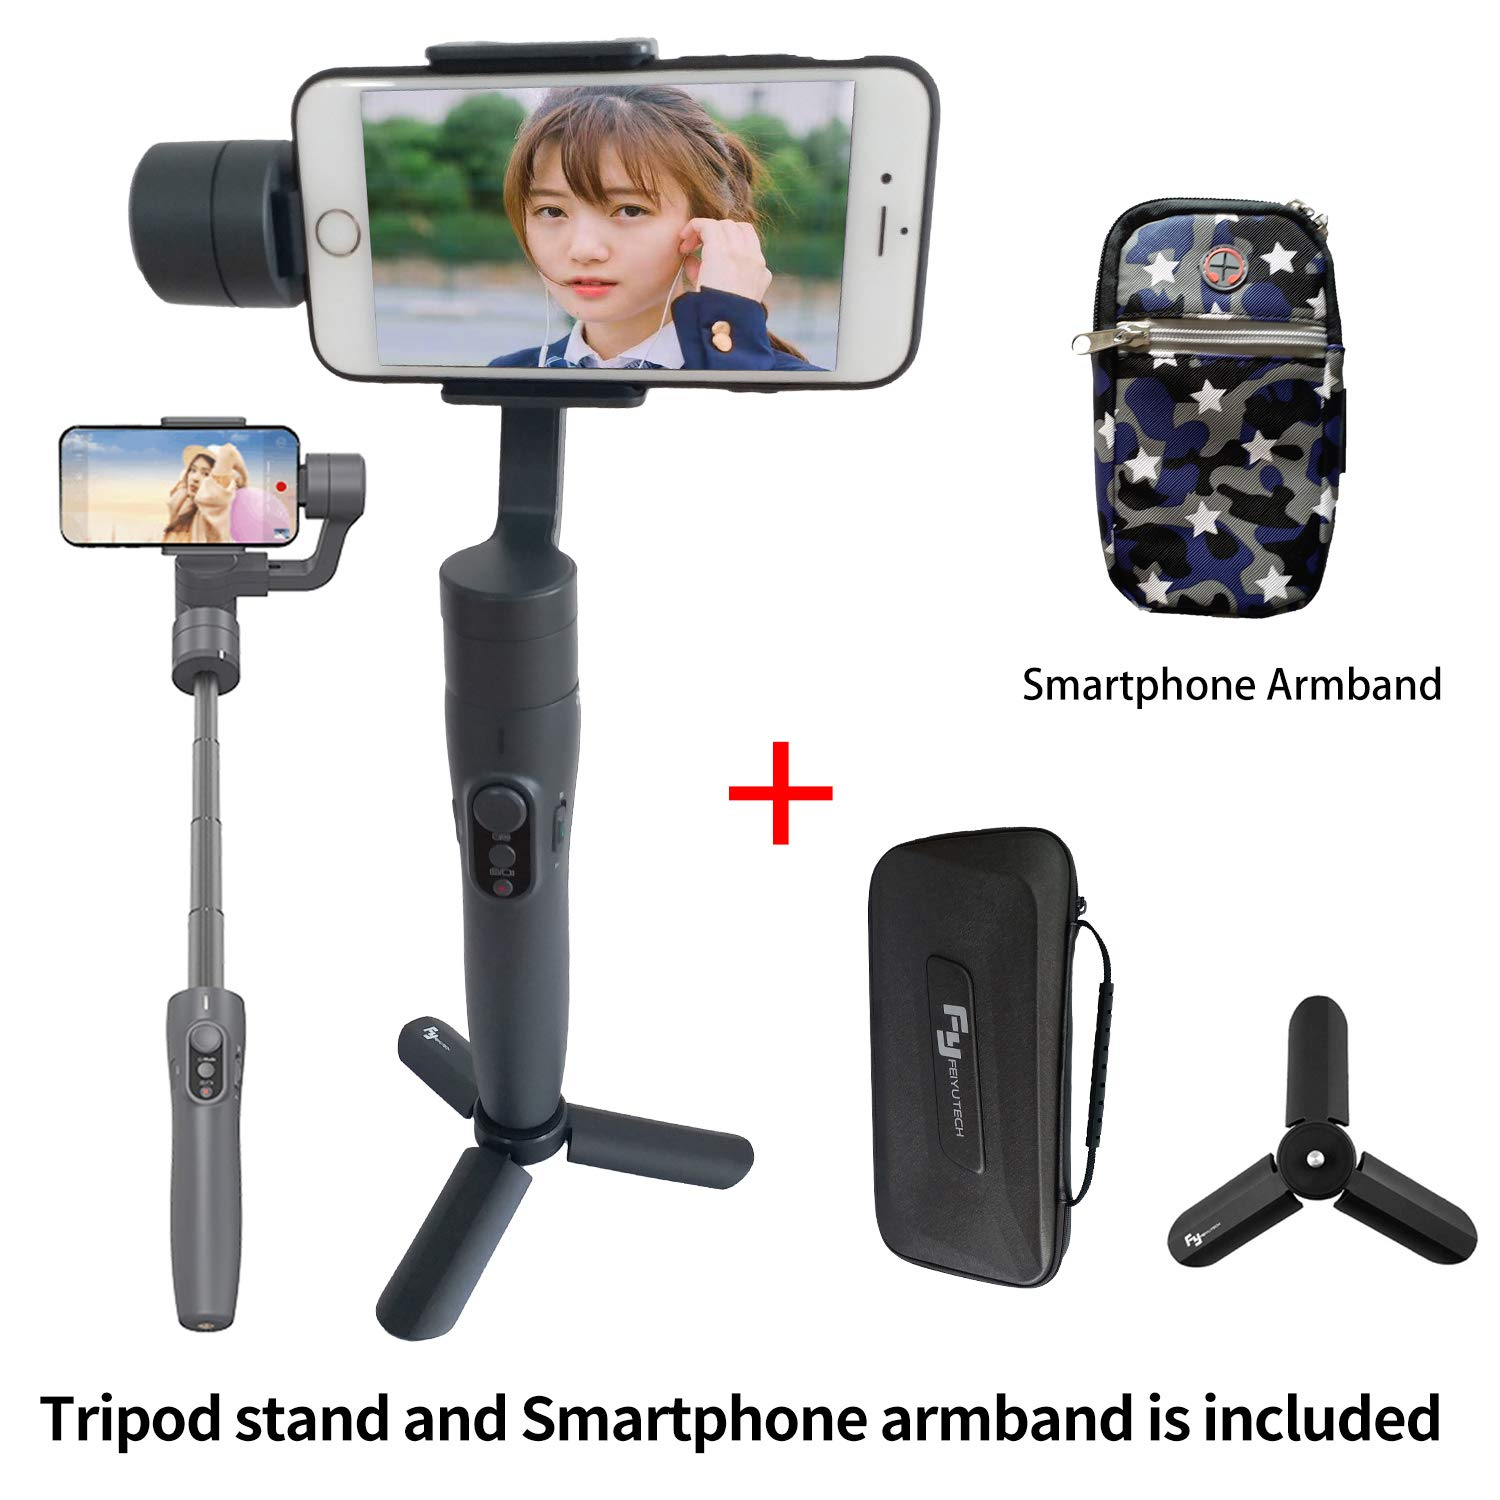 Feiyu Tech Vimble 2 Extendable Handheld 3-Axis Gimbal Stabilizer for Smartphone i+(Tripod Stand and Smartphone armbrand) FeiyuTech